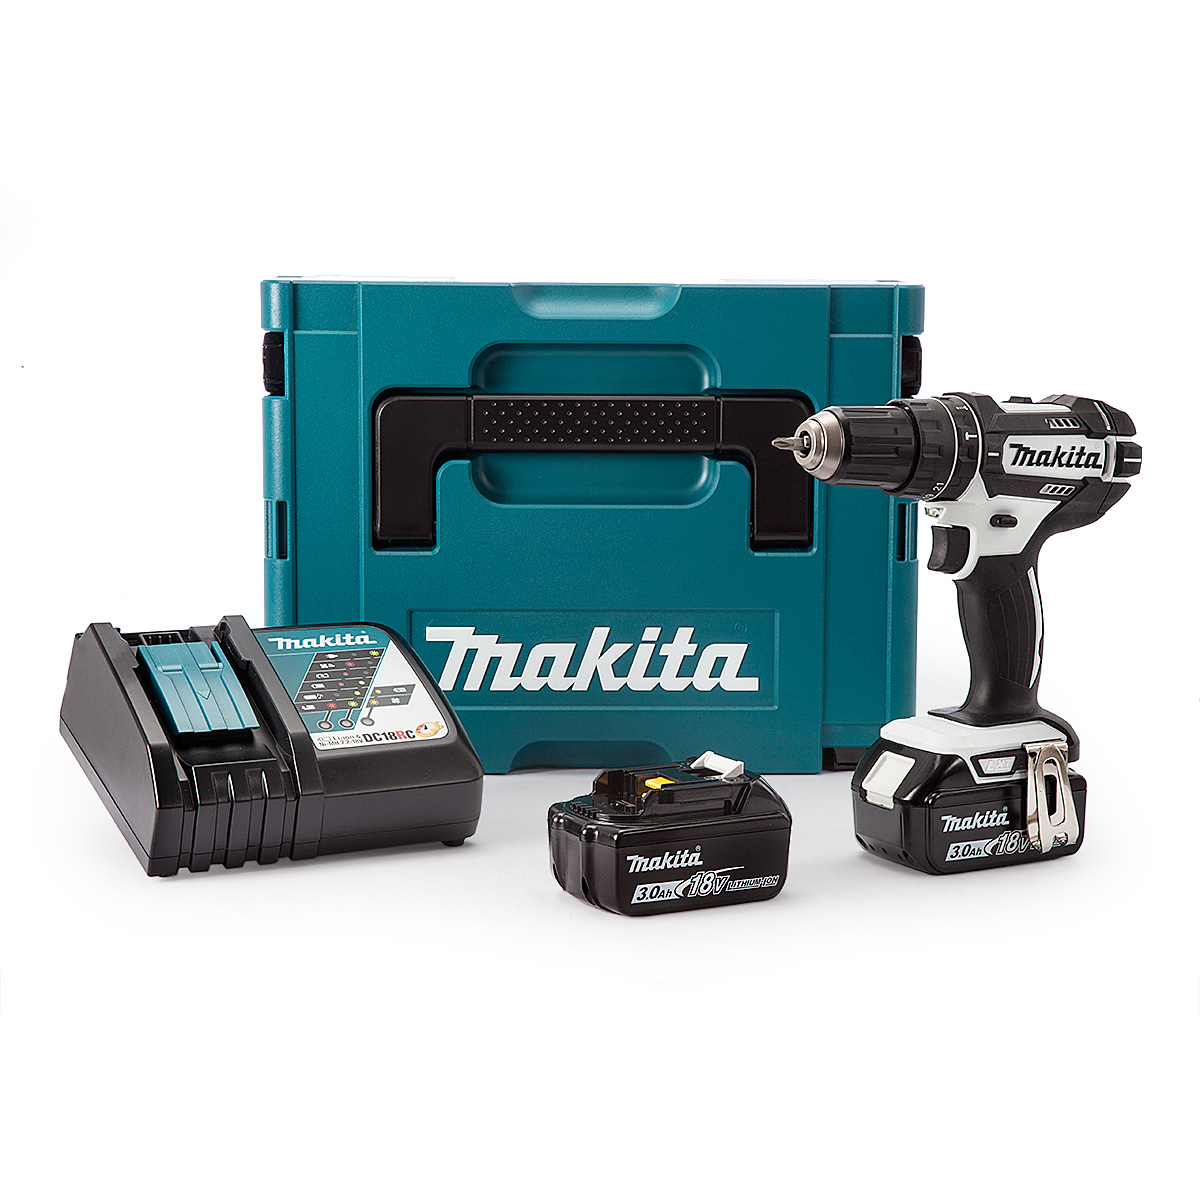 Makita 18V Li-ion Combi Drill 2x3.0ah Battery + Charger